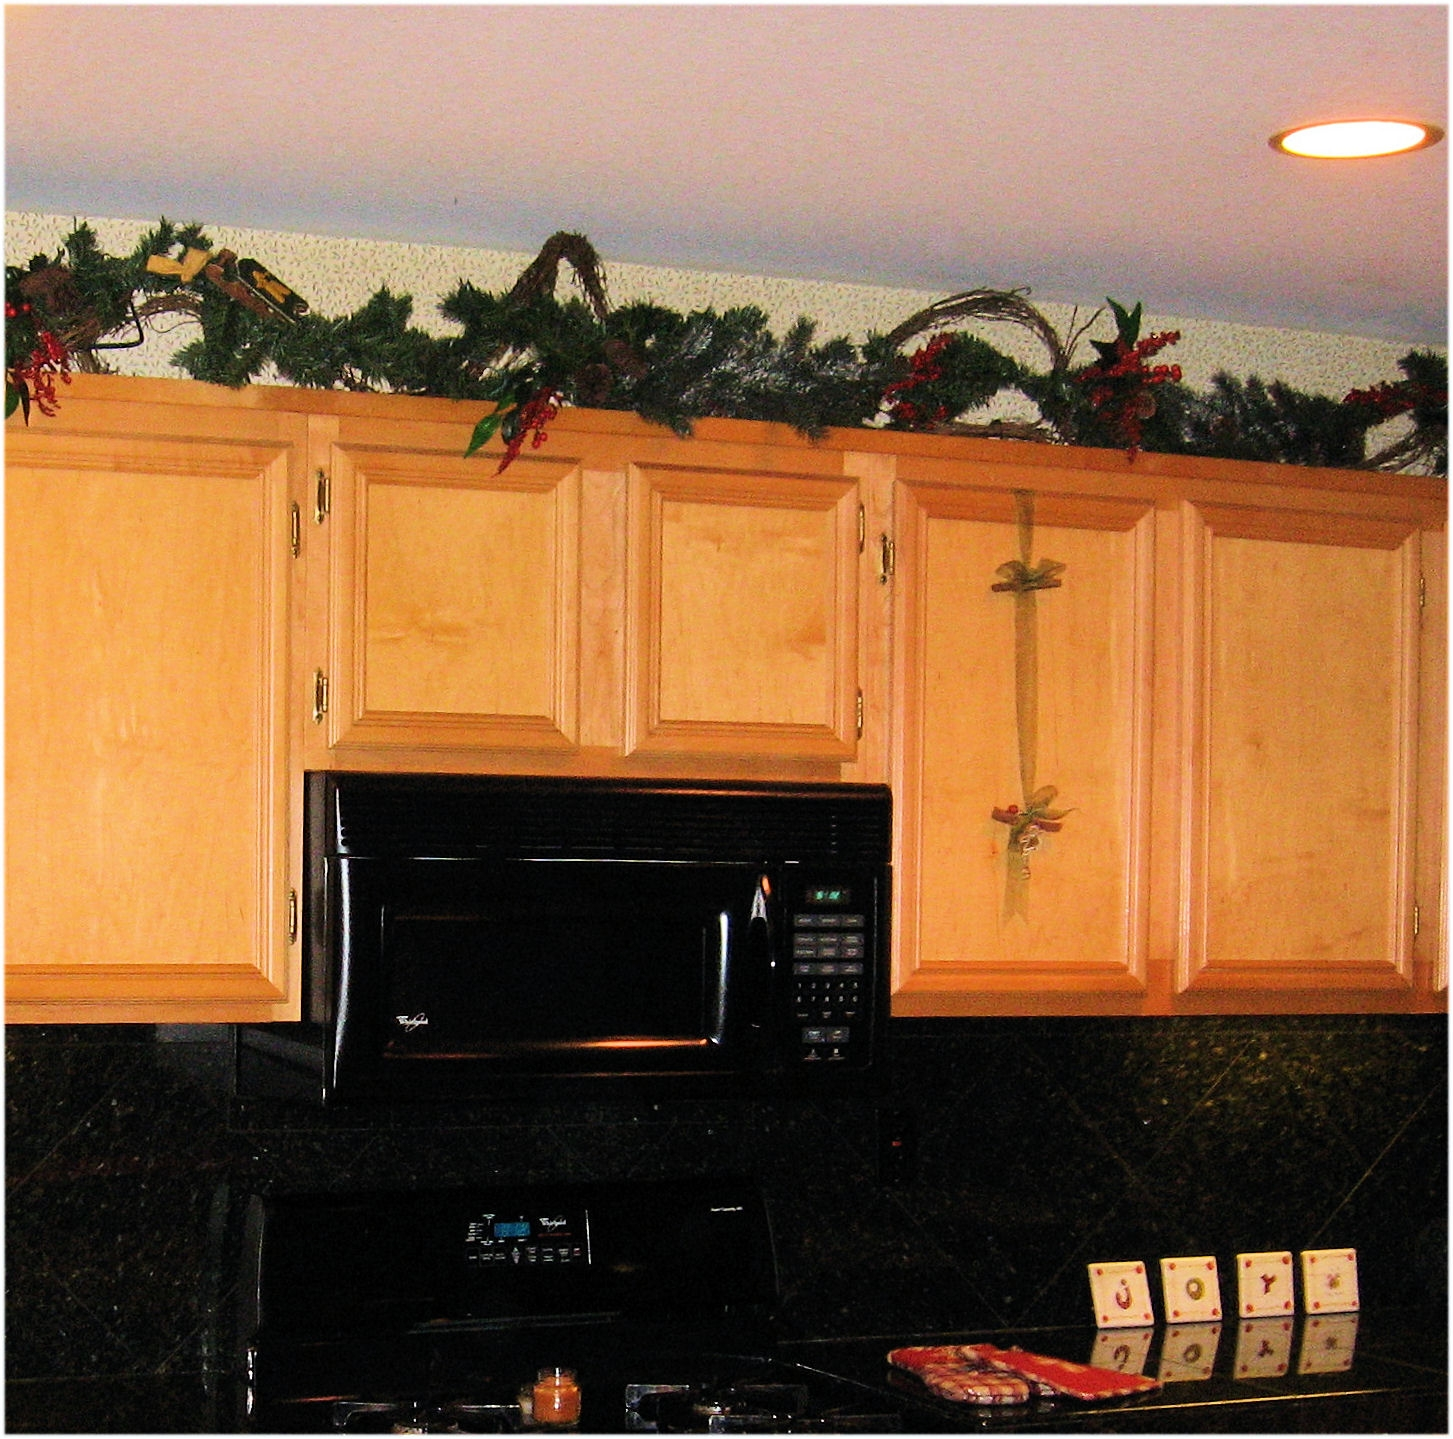 Lighted Garland Above Kitchen Cabinets